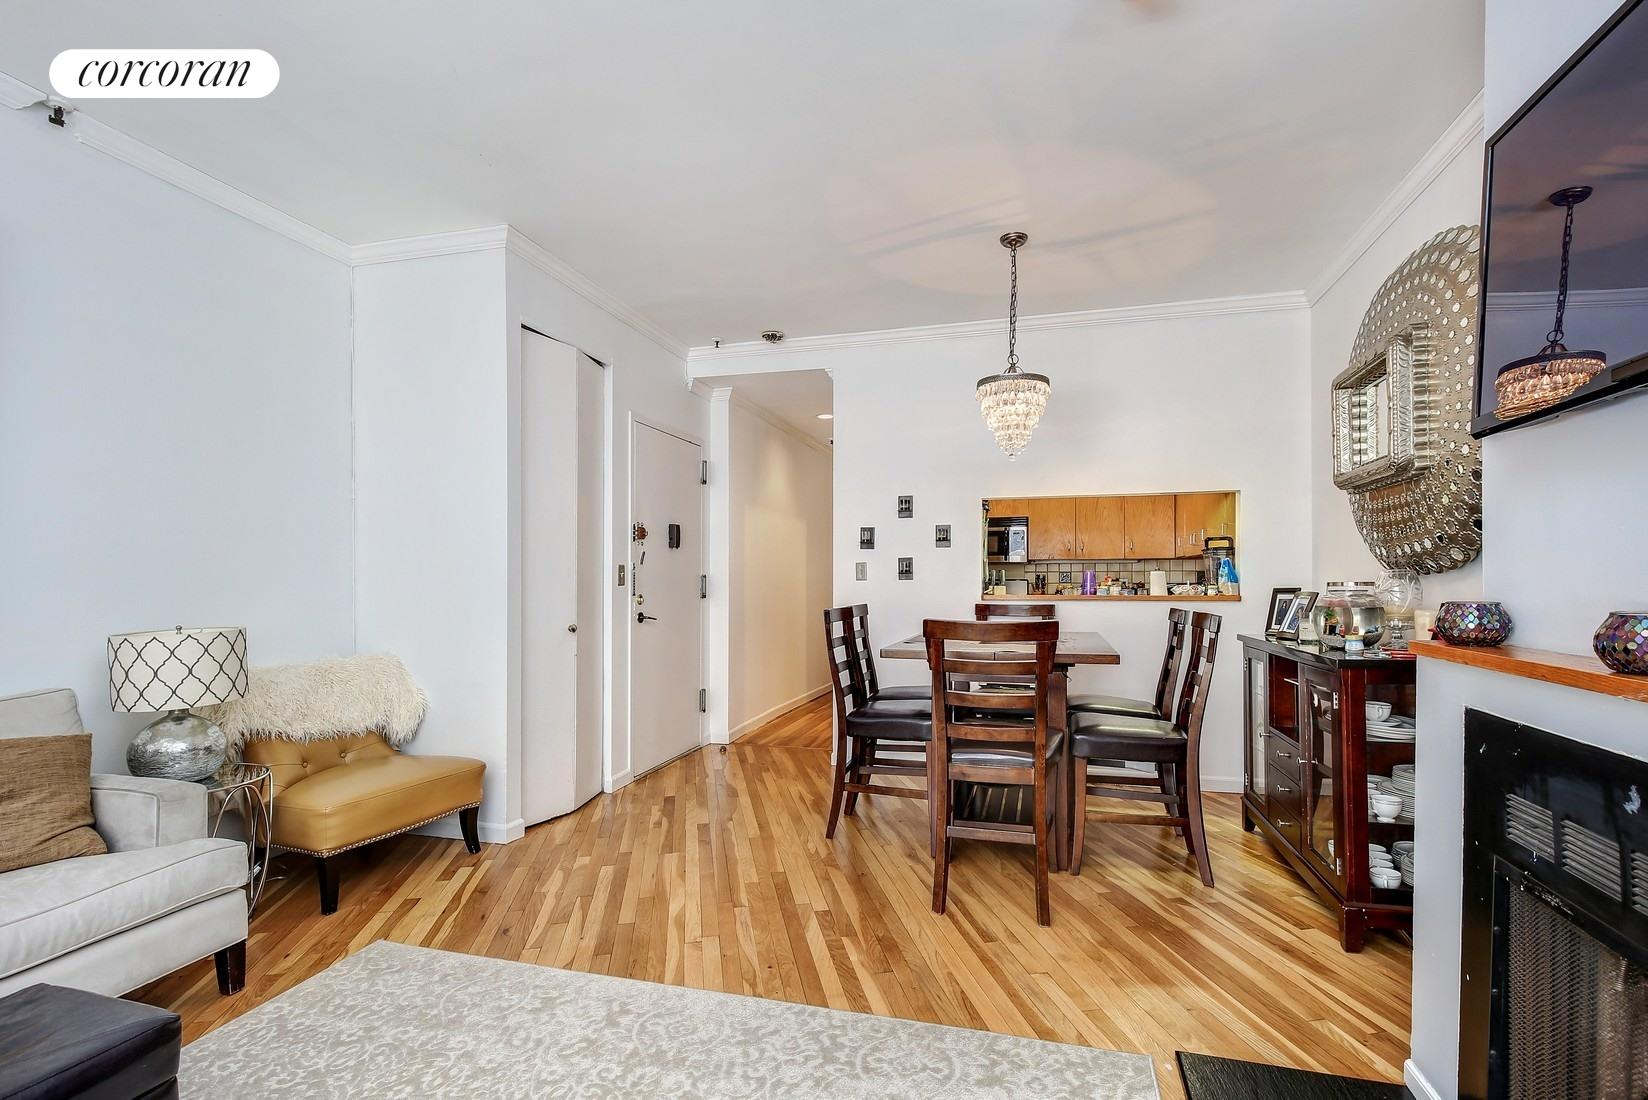 Corcoran, 161 Remsen Street, Apt. 2C, Brooklyn Heights Real Estate ...